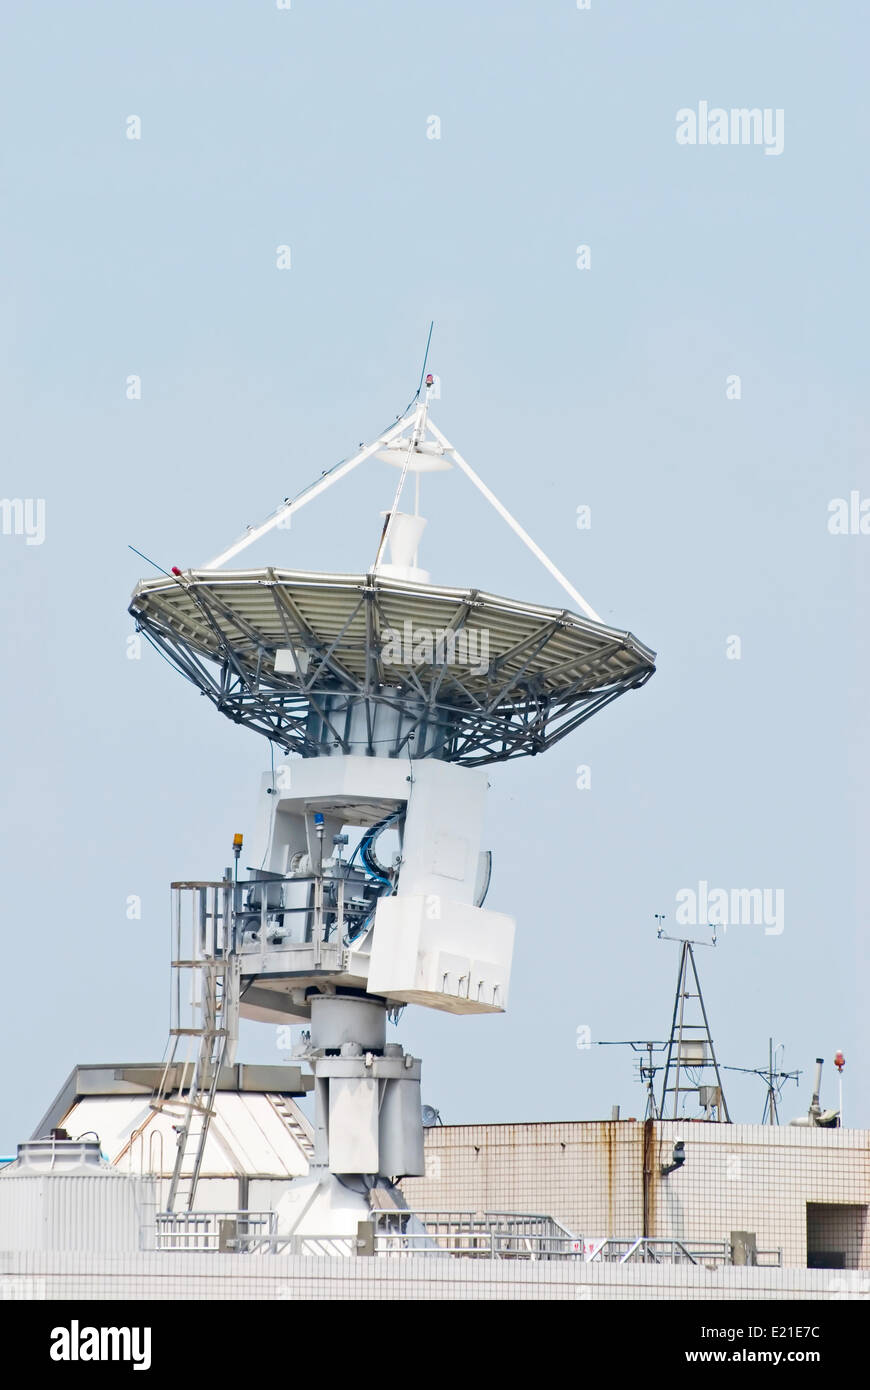 Antenna communicate with satellite - Stock Image